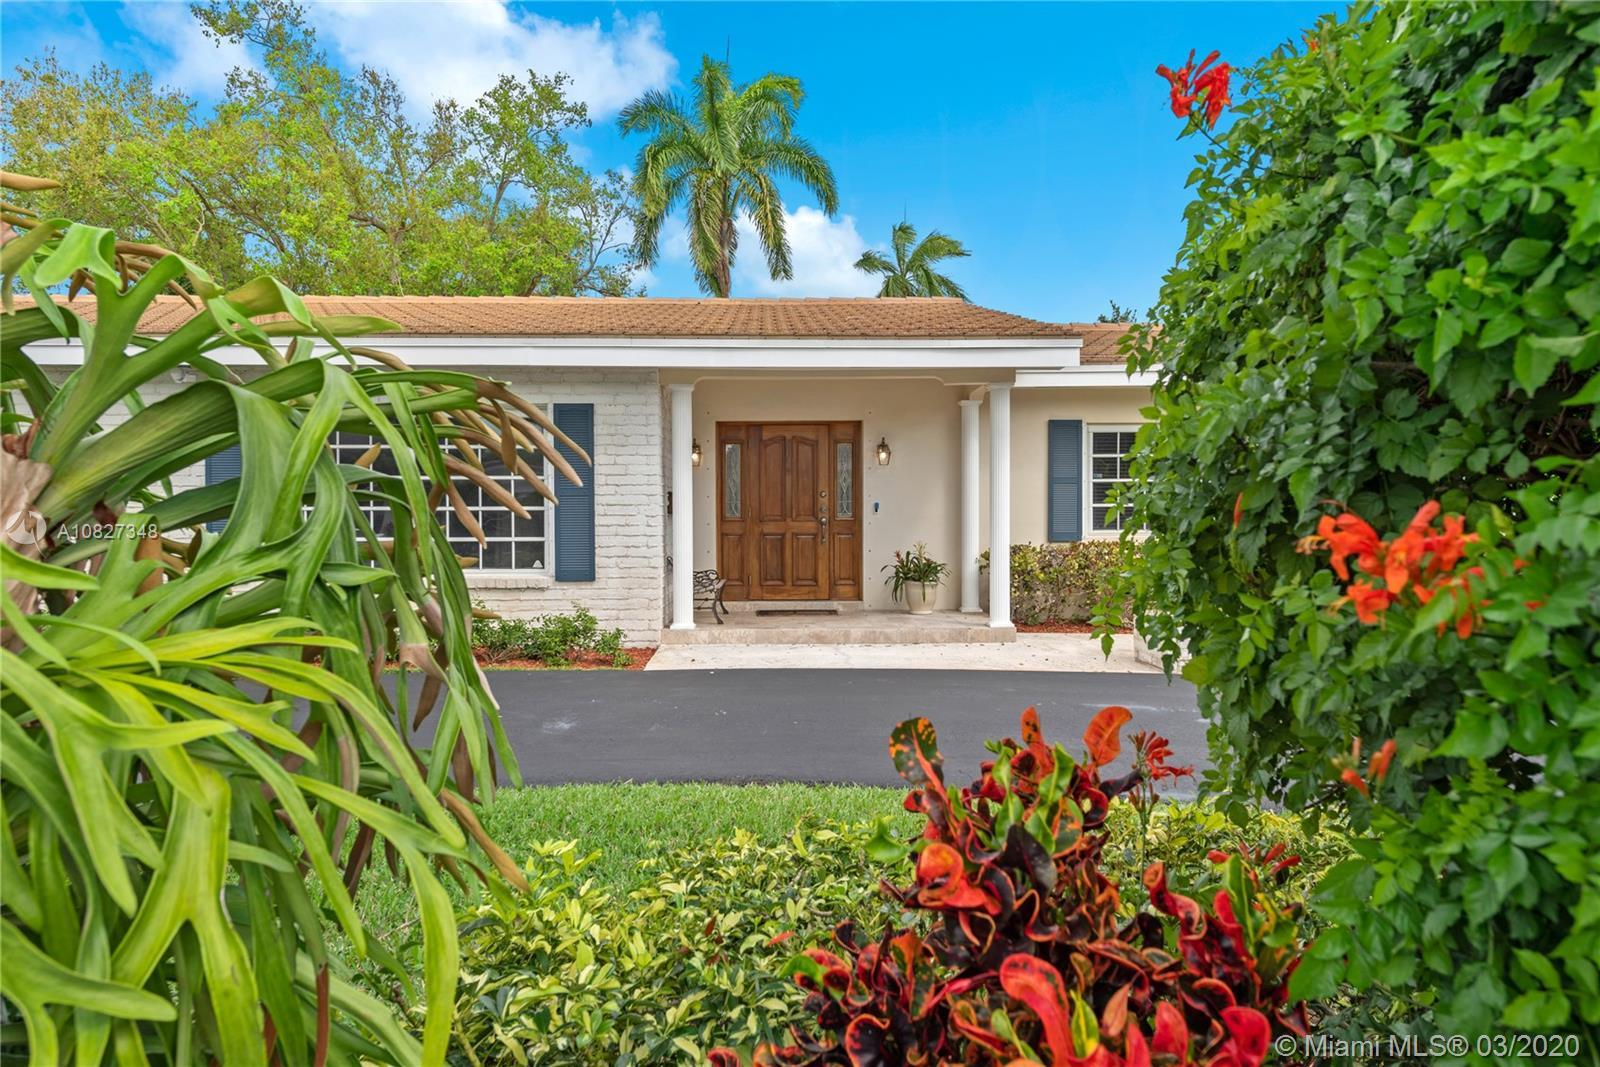 This pristine Mid-Century home in the heart of Pinecrest is move-in ready with recently updated plum